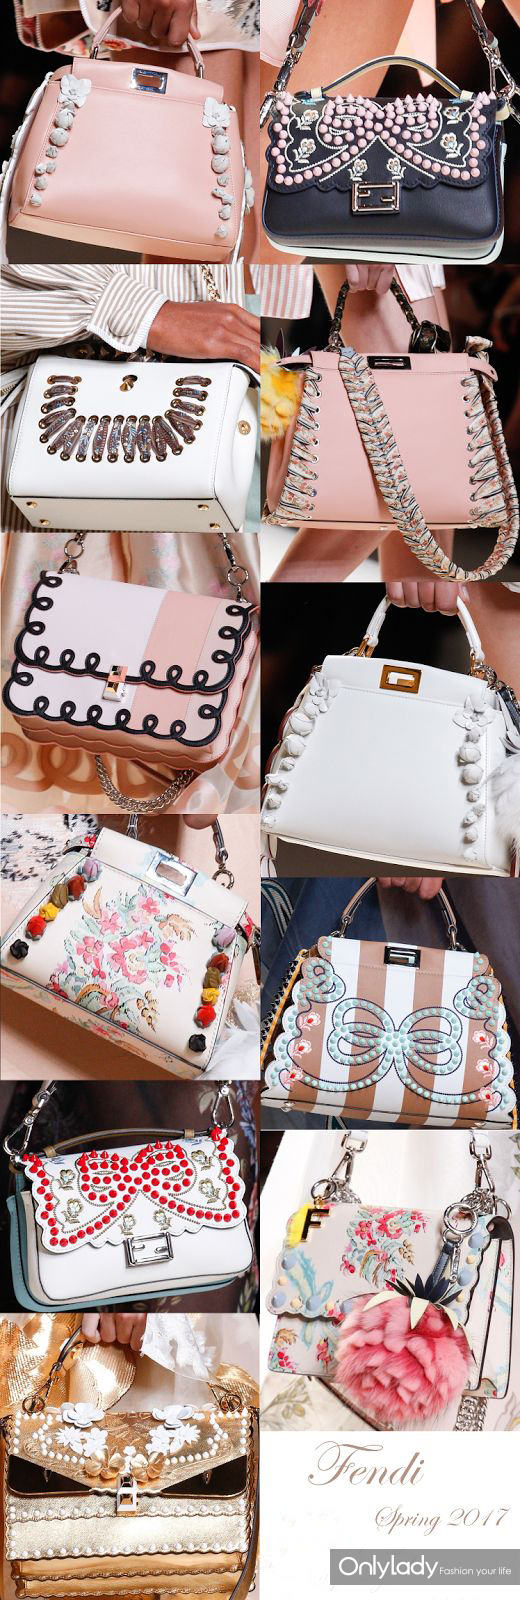 230f4b18e4bc07b781424be06ad05c86--fendi--bag-design